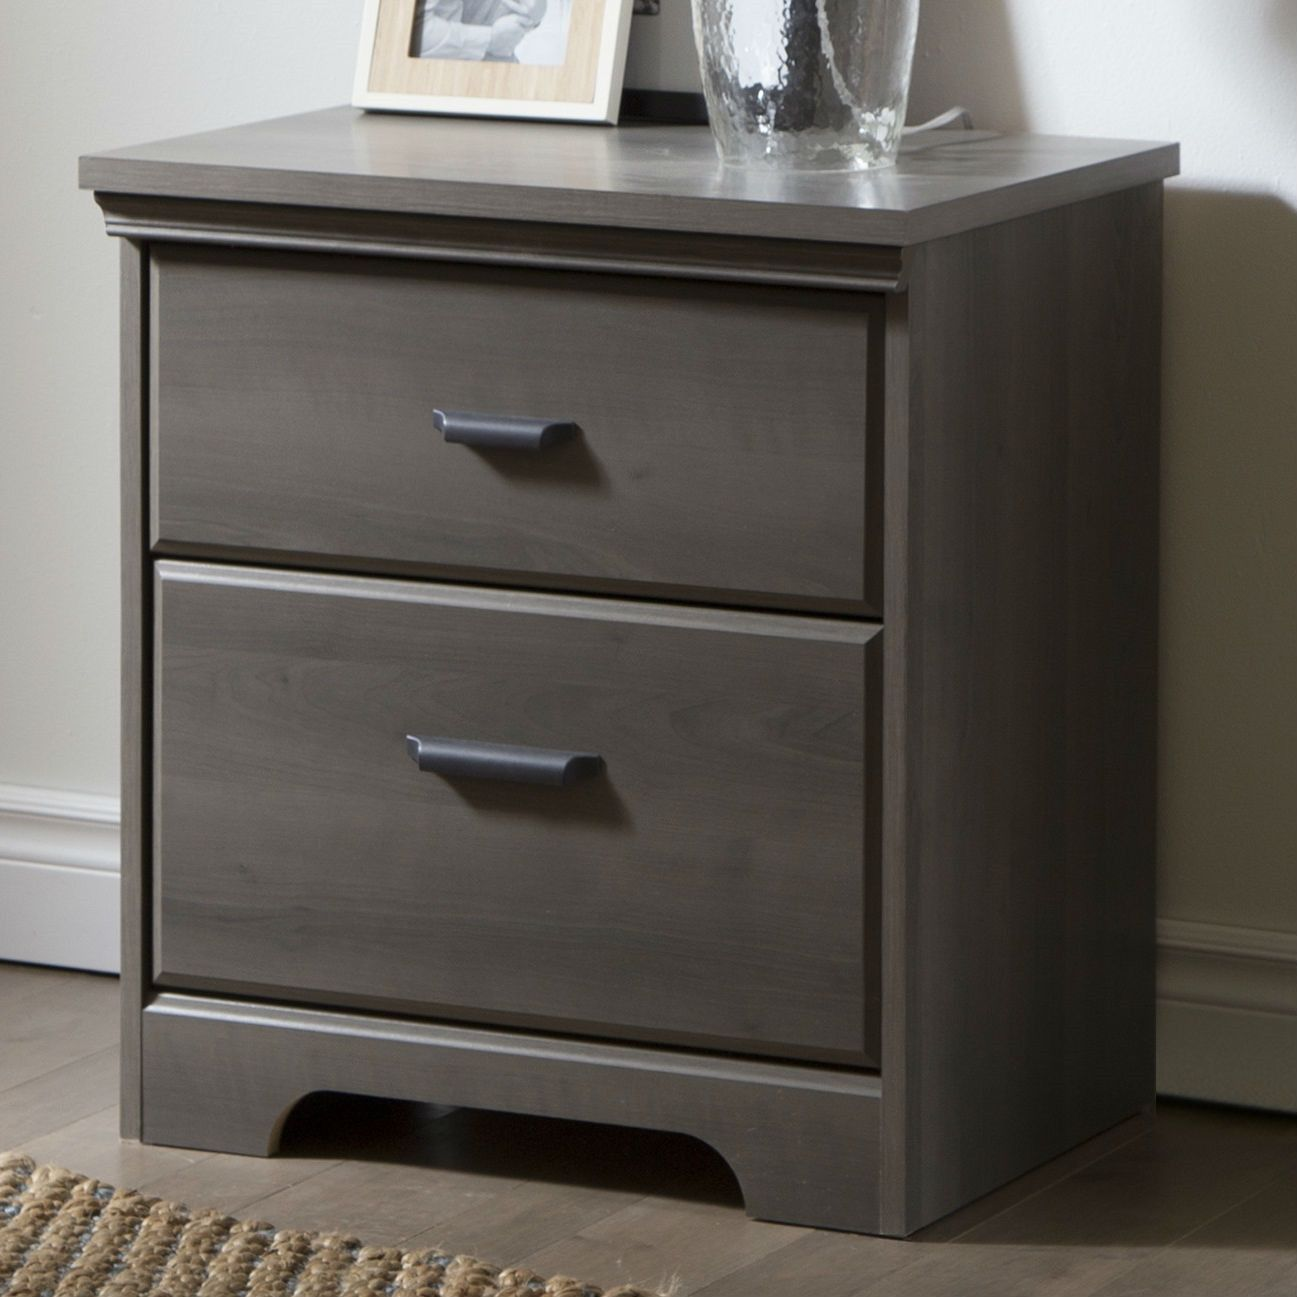 You will love this drawer bedroom nightstand in gray maple wood